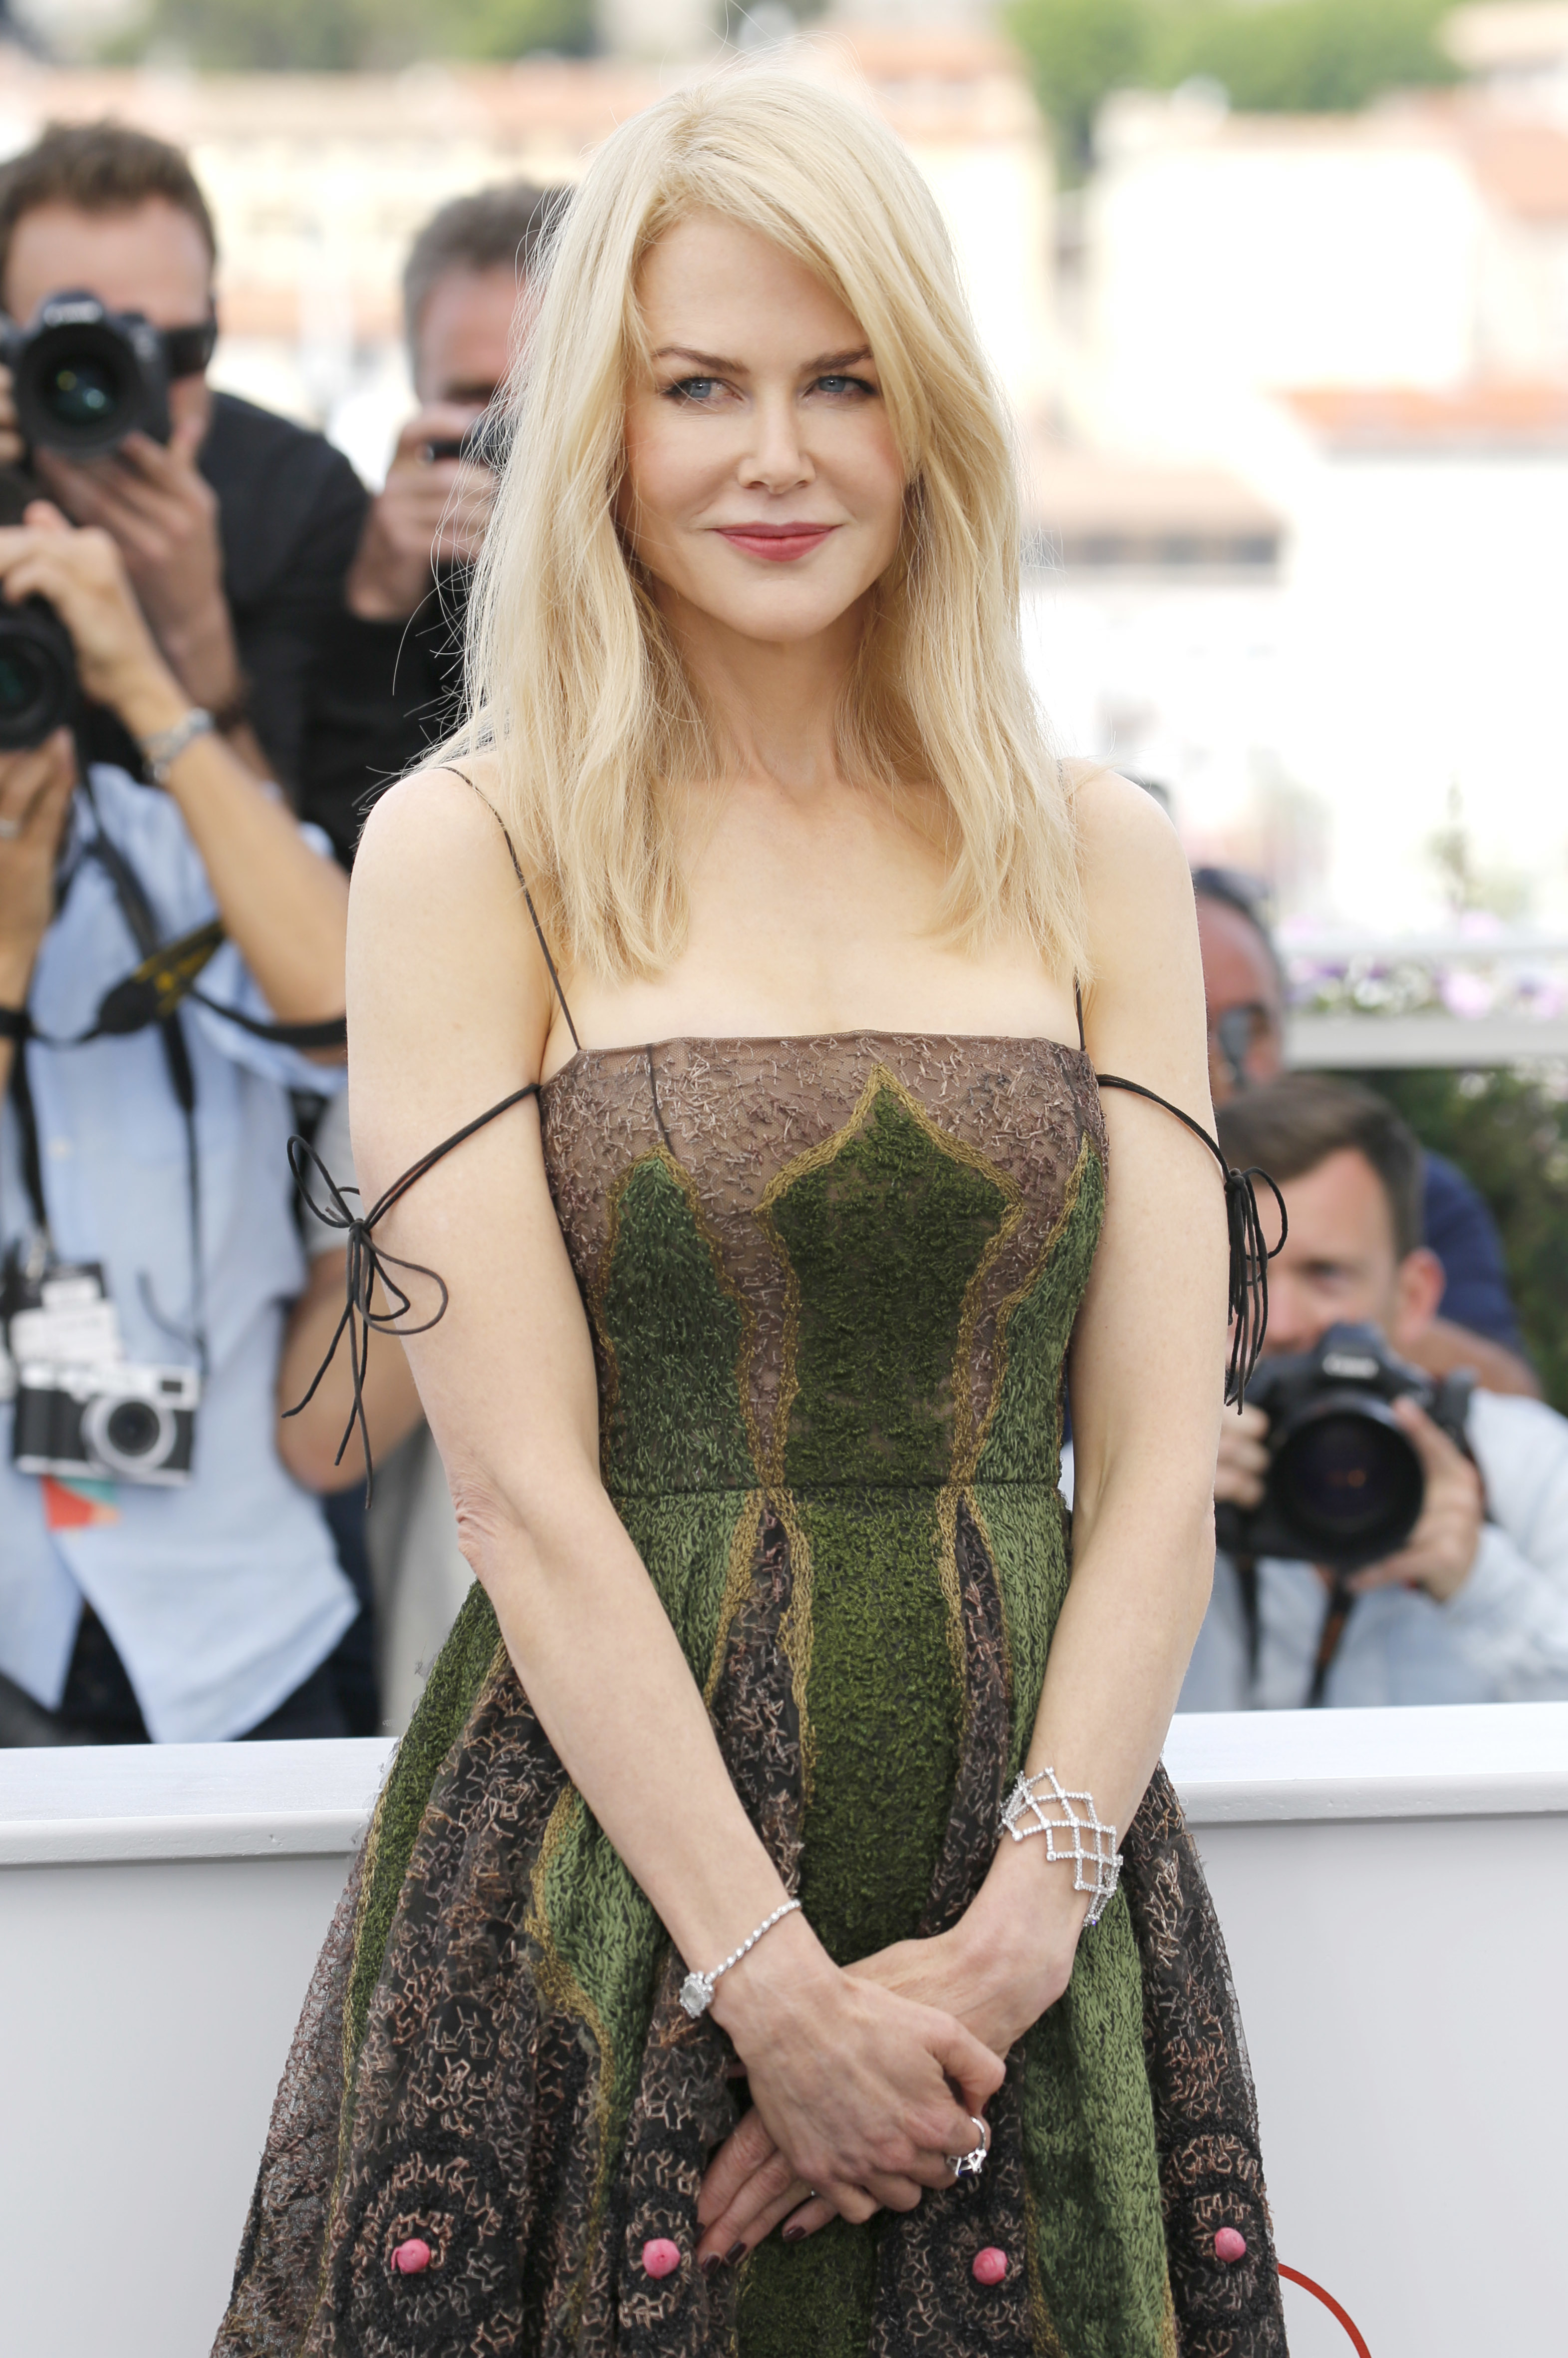 70th annual Cannes Film Festival - 'The Killing of a Sacred Deer' - Photocall  Featuring: Nicole Kidman Where: Cannes, France When: 22 May 2017 Credit: Dave Bedrosian/Future Image/WENN.com  **Not available for publication in Germany**